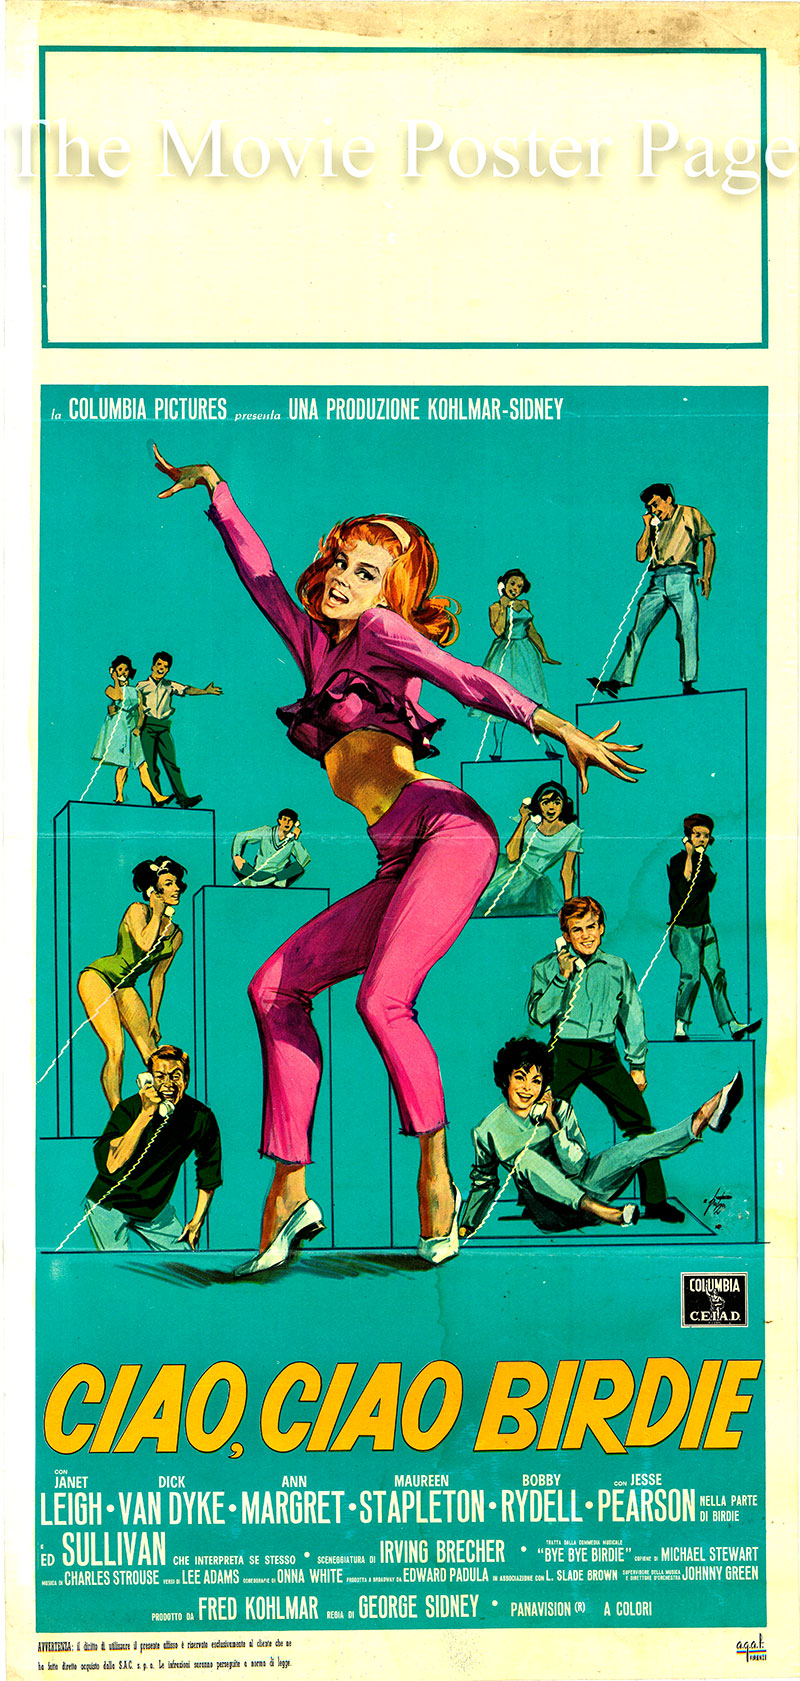 Pictured is an Italian locandina poster for the 1963 George Sidney film Bye Bye Birdie starring Ann-Margret as Kim McAfee.